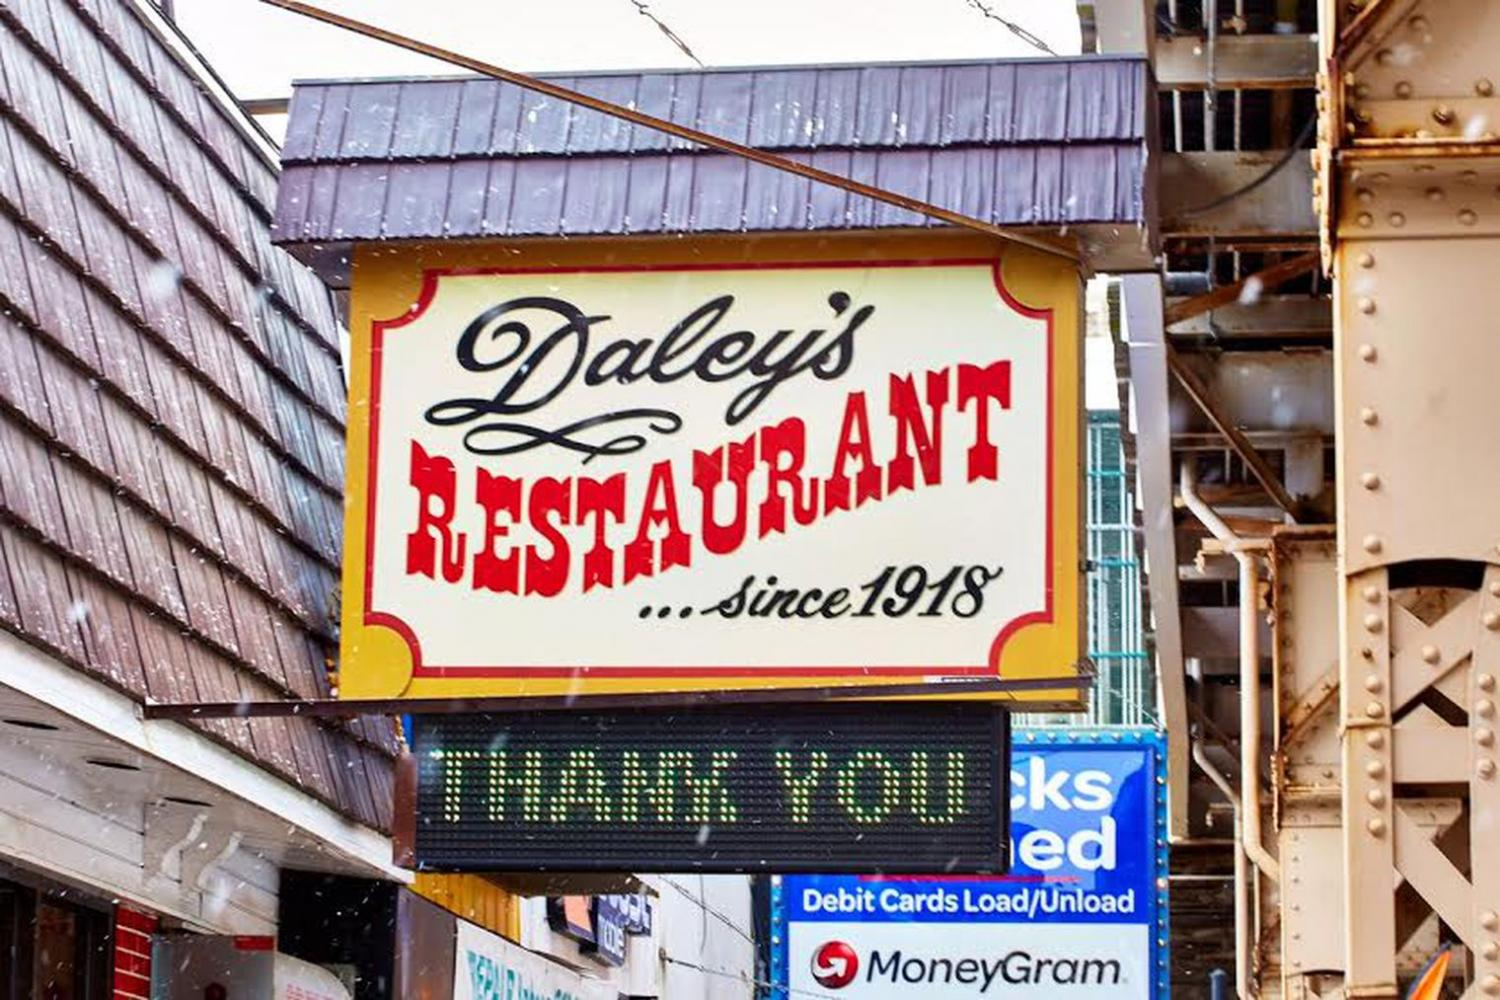 Daley's was started in 1892 and new owners took over in 1918, hence the